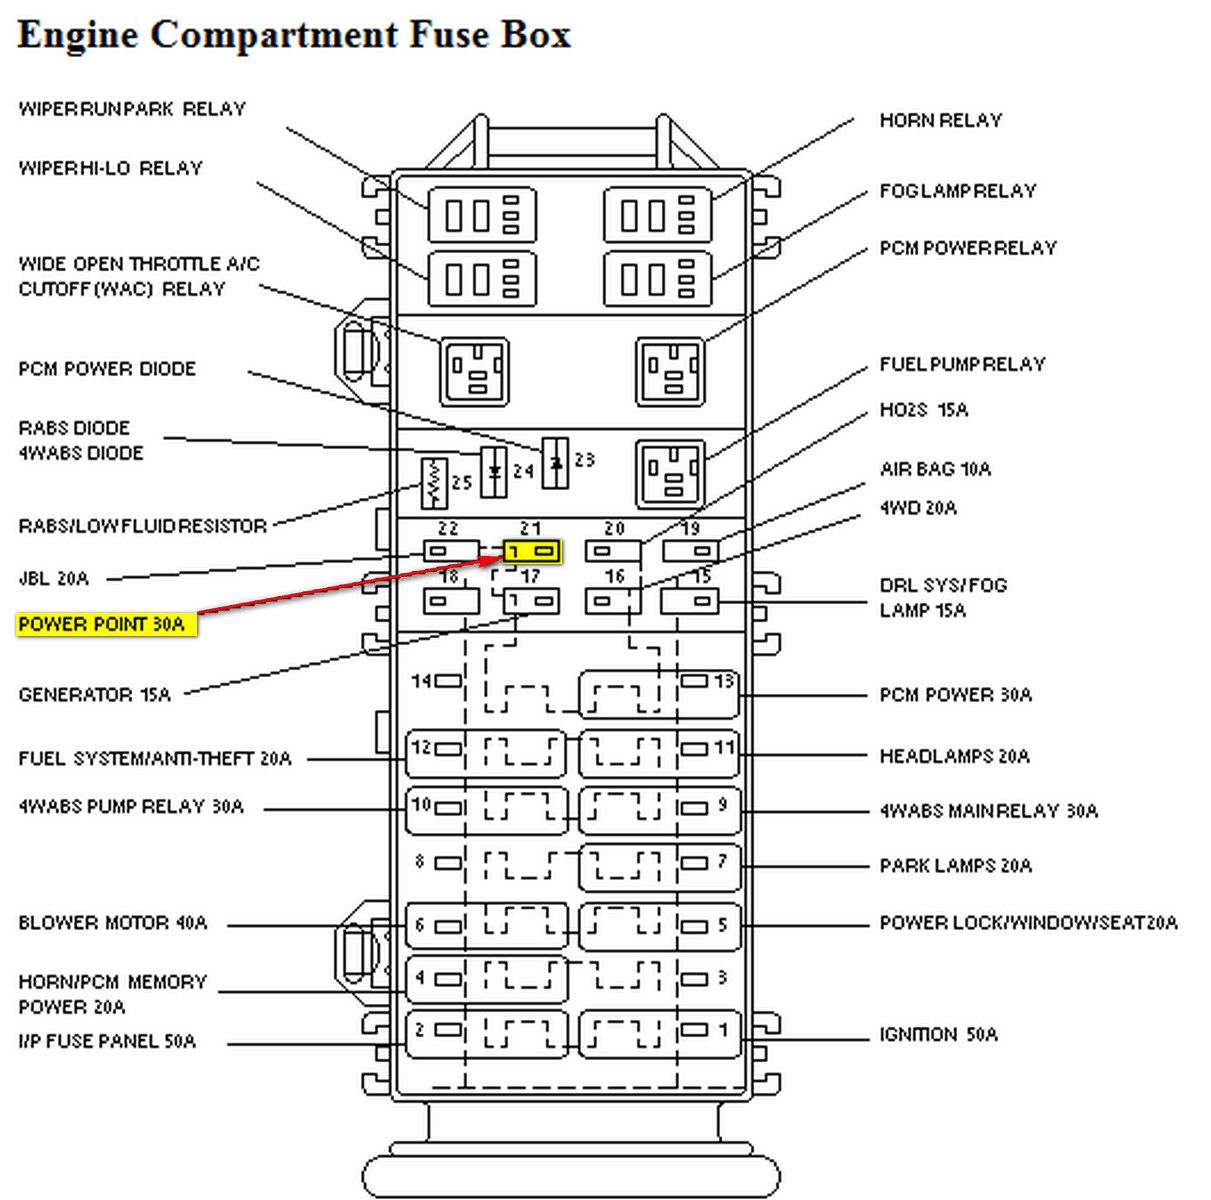 1997 Ford Van Fuse Box Diagram Detailed Schematics 1996 E150 Panel Ranger Truck Part Diagrams Pontiac Grand Am